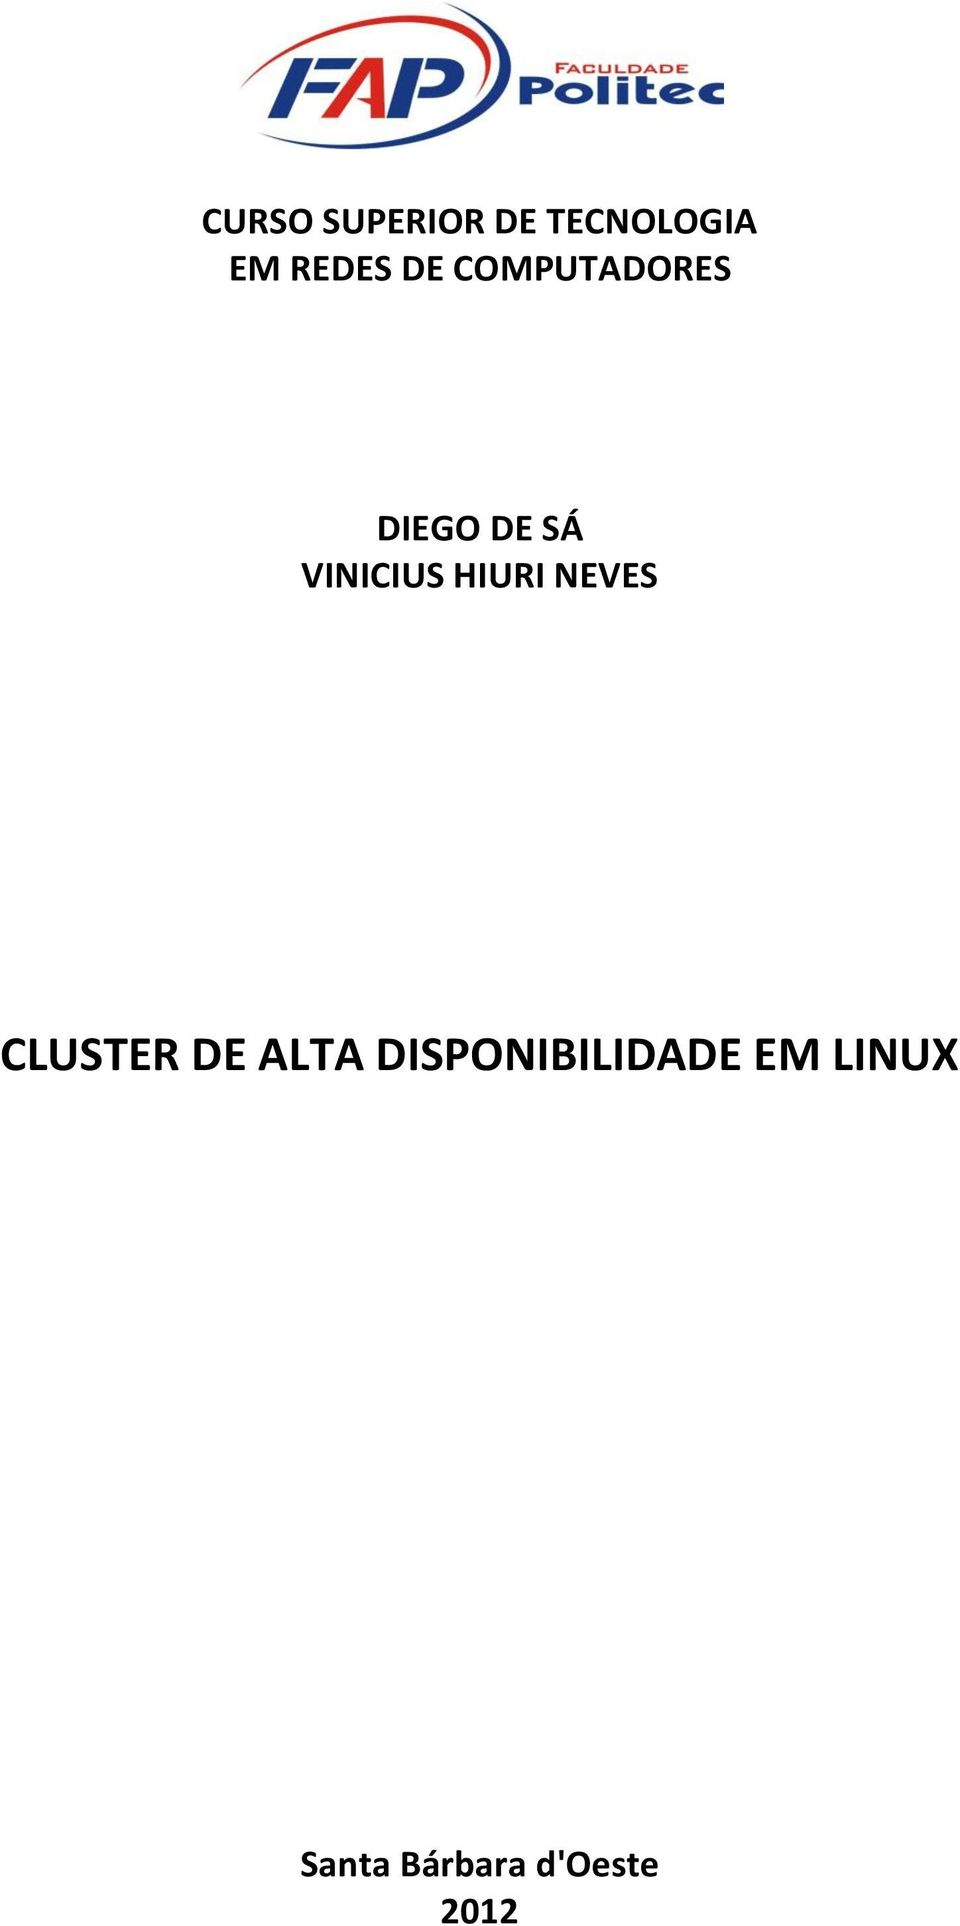 HIURI NEVES CLUSTER DE ALTA